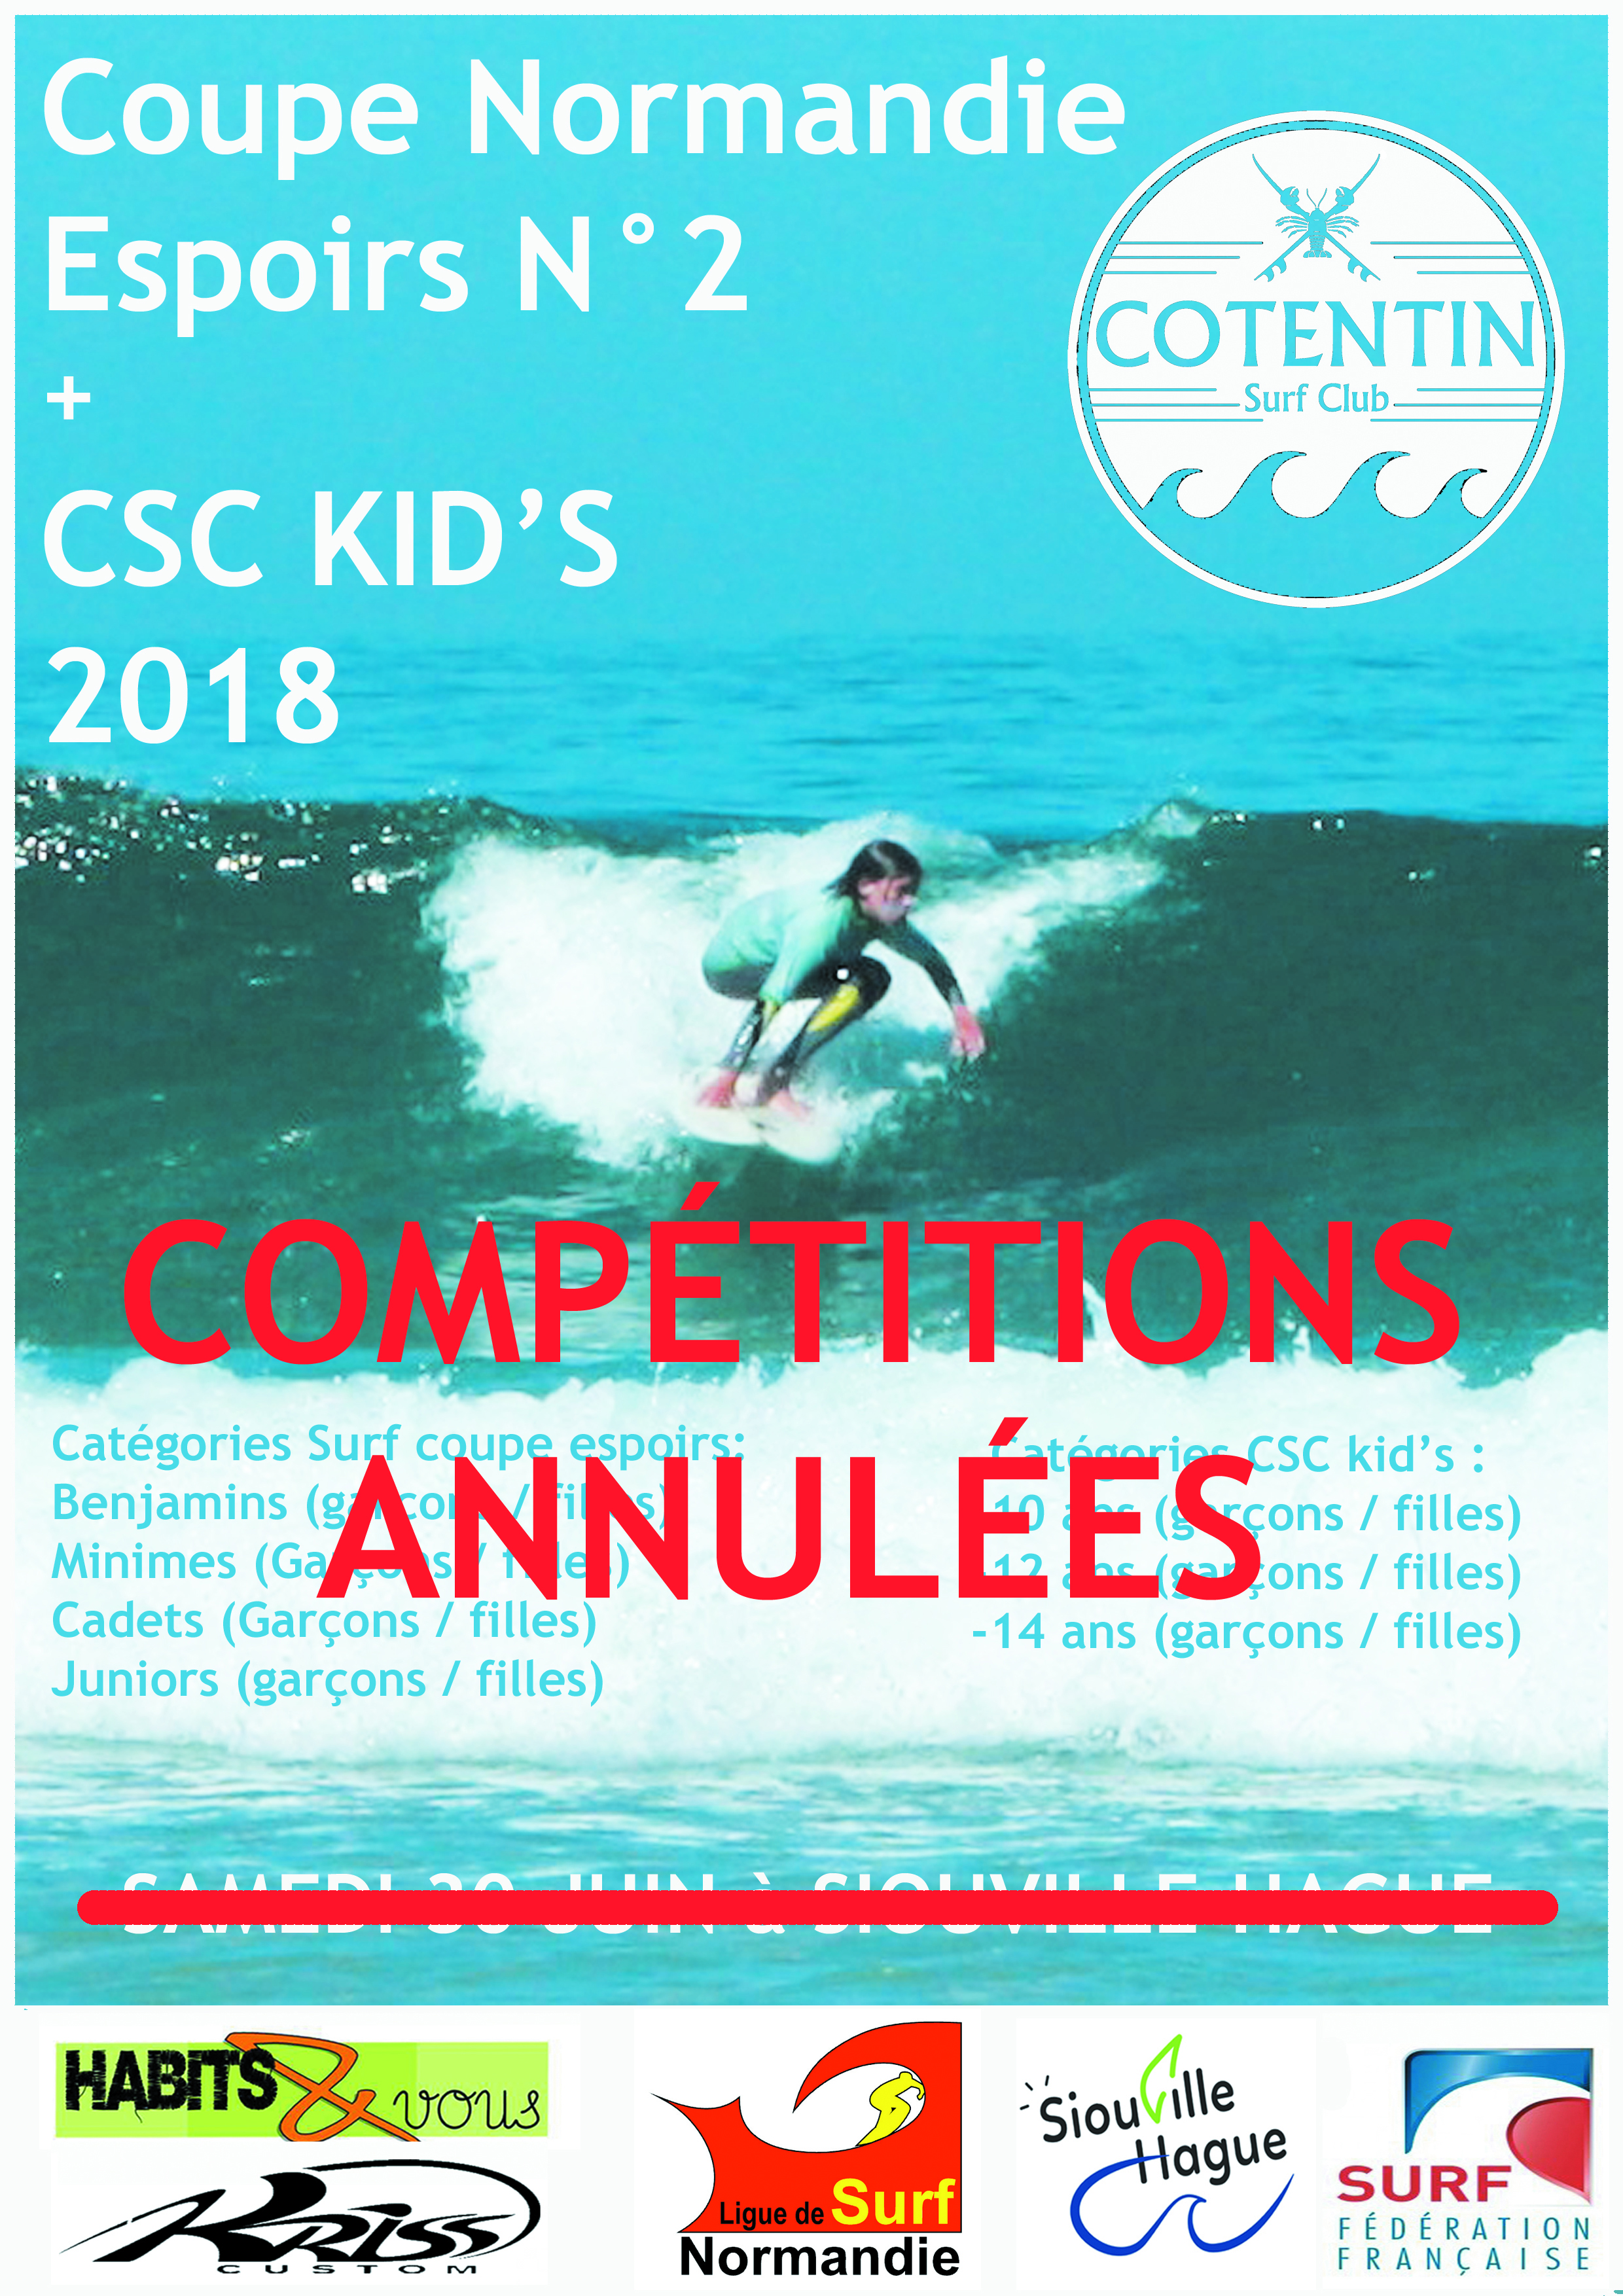 Annulation CSC kid's et coupe Normandie espoirs N°2